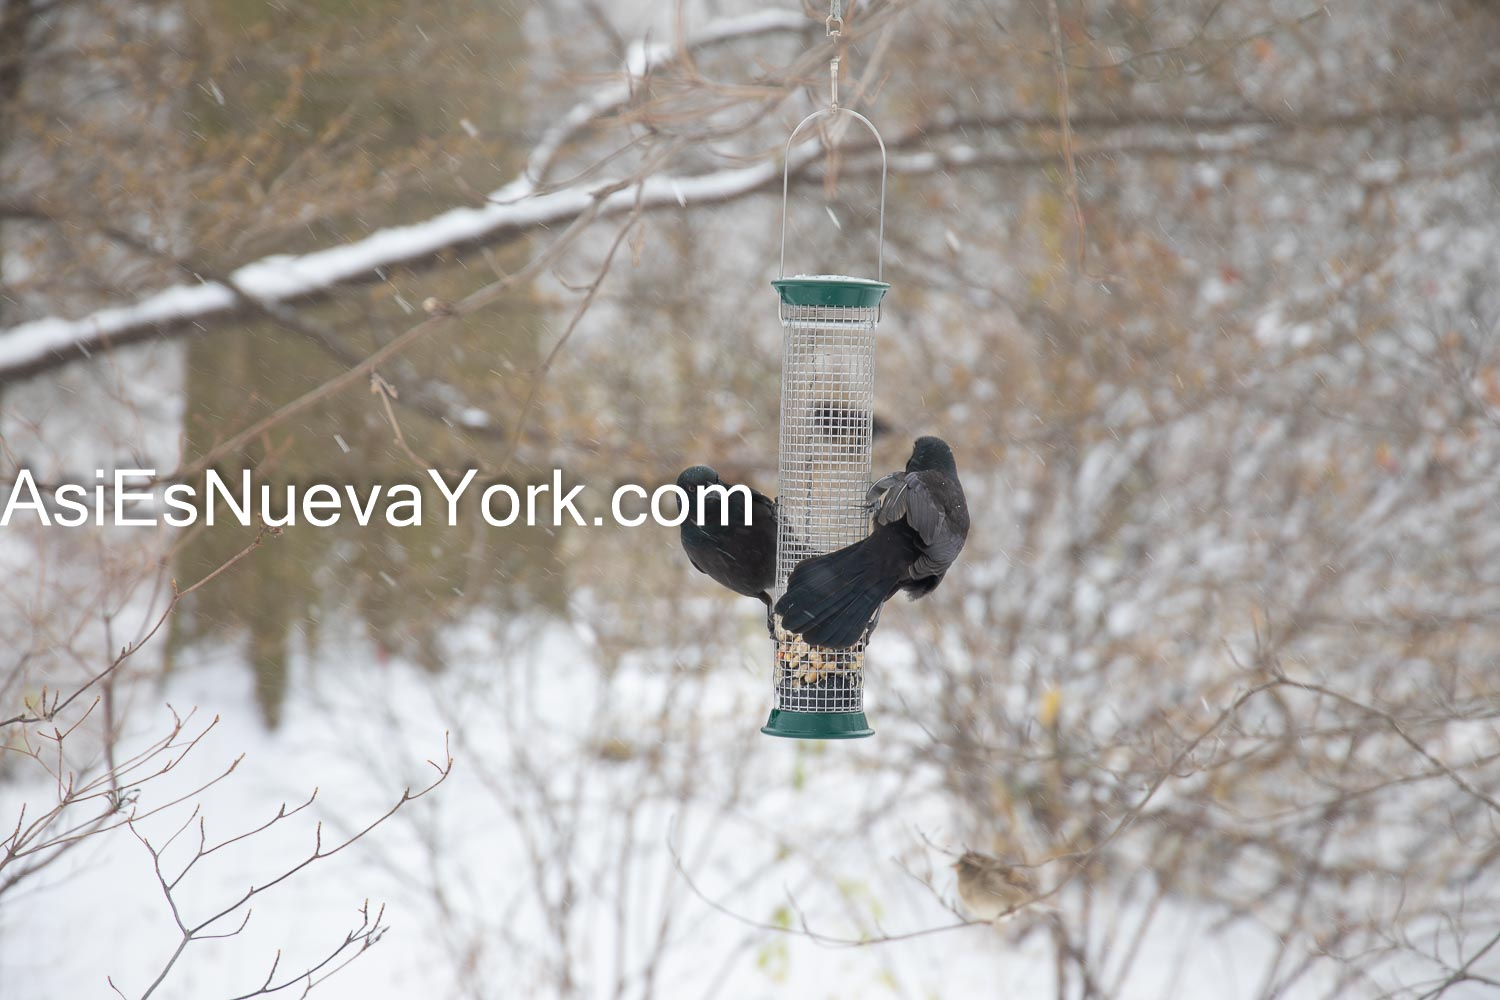 Thursday, December 17, 2020. Manhattan, New York City – Winter storm Gail and birds in Central Park. Photo by Javier Soriano/www.JavierSoriano.com